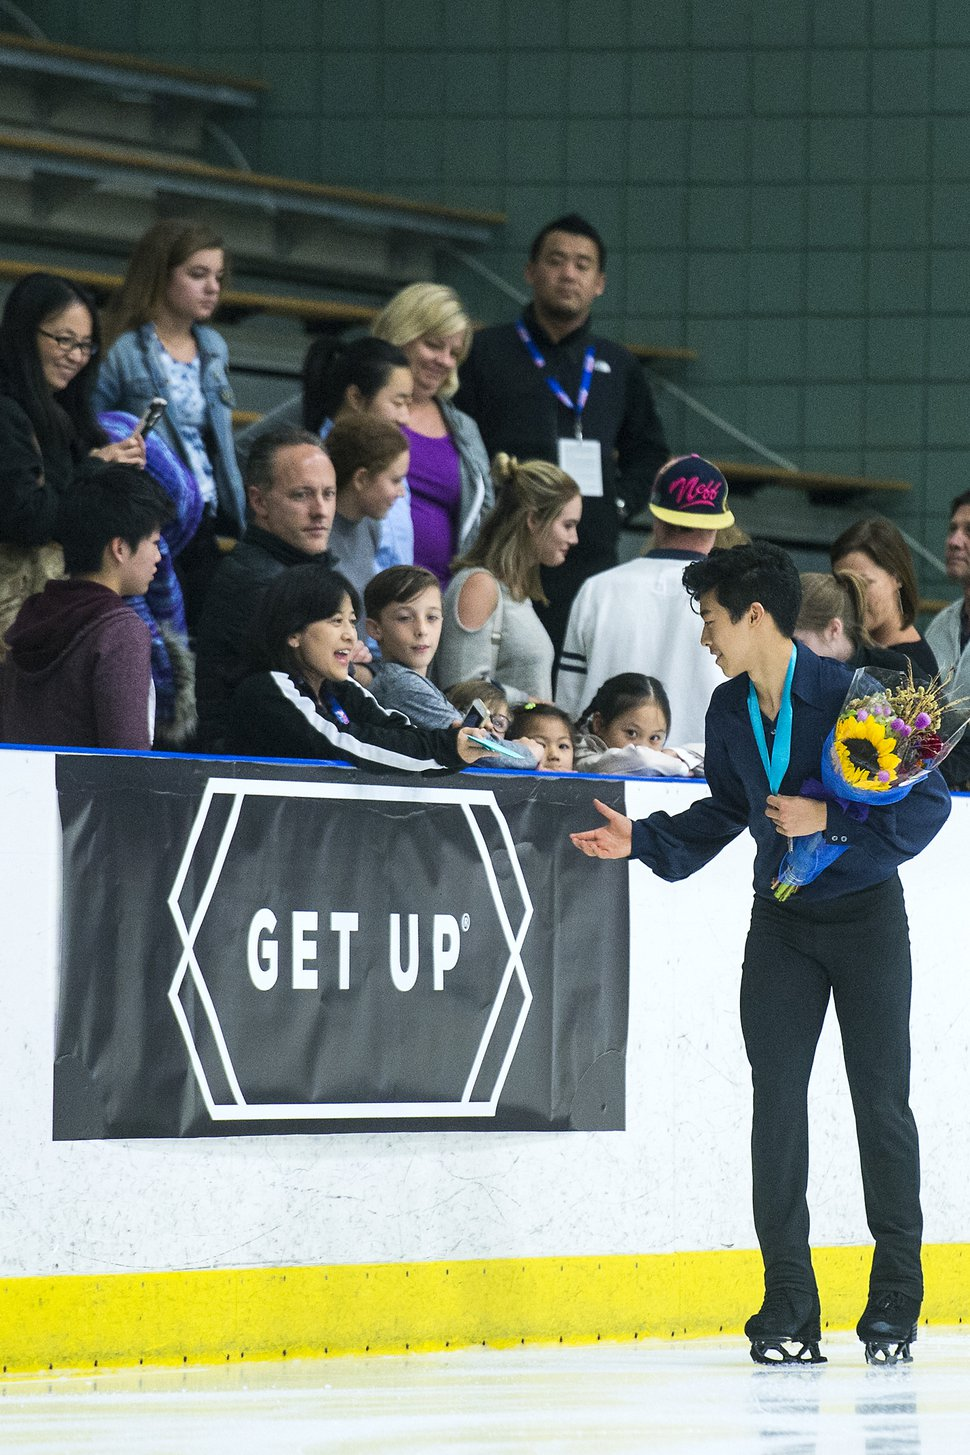 (Chris Detrick | The Salt Lake Tribune) Nathan Chen greets members of the crowd after winning the Men's Free Skate during the U.S. International Figure Skating Classic at the Salt Lake City Sports Complex Friday, Sept. 15, 2017.